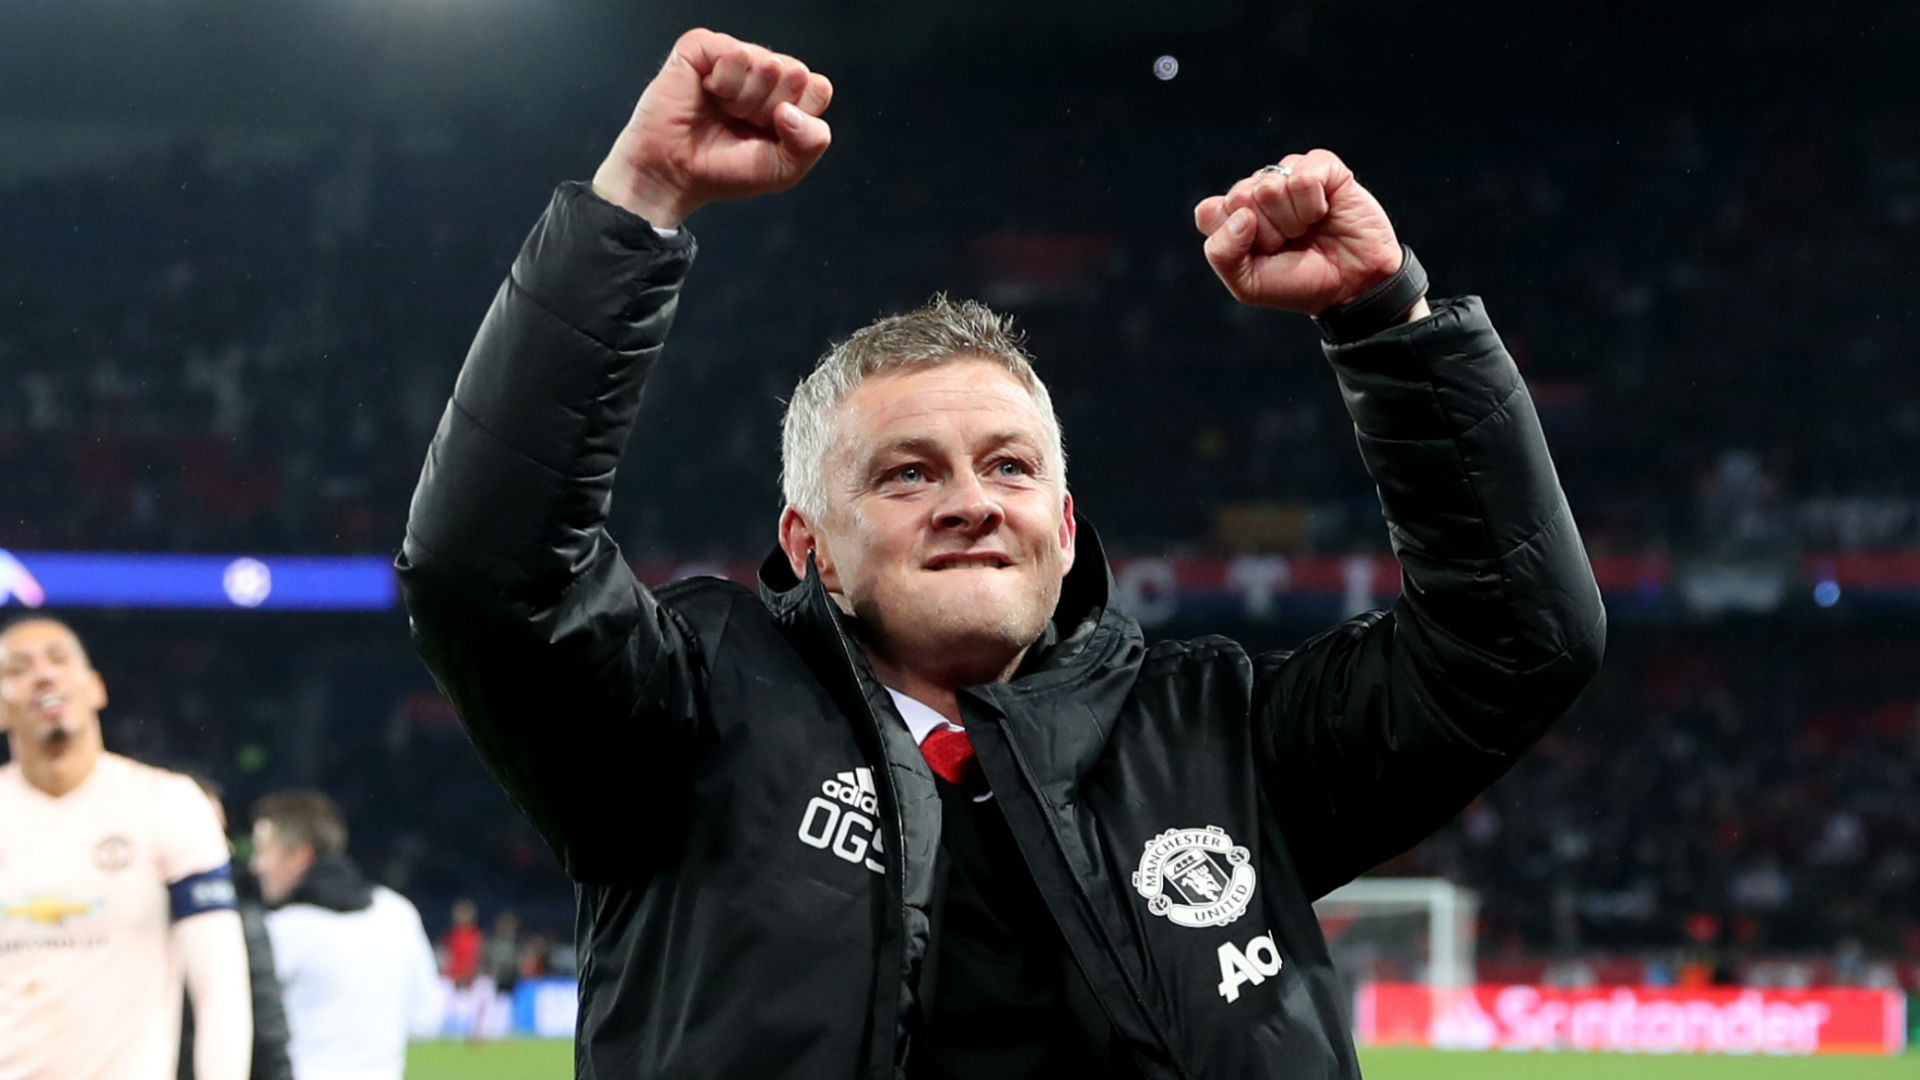 On this day in sport: Solskjaer lands Man Utd job, Colts head to Indy